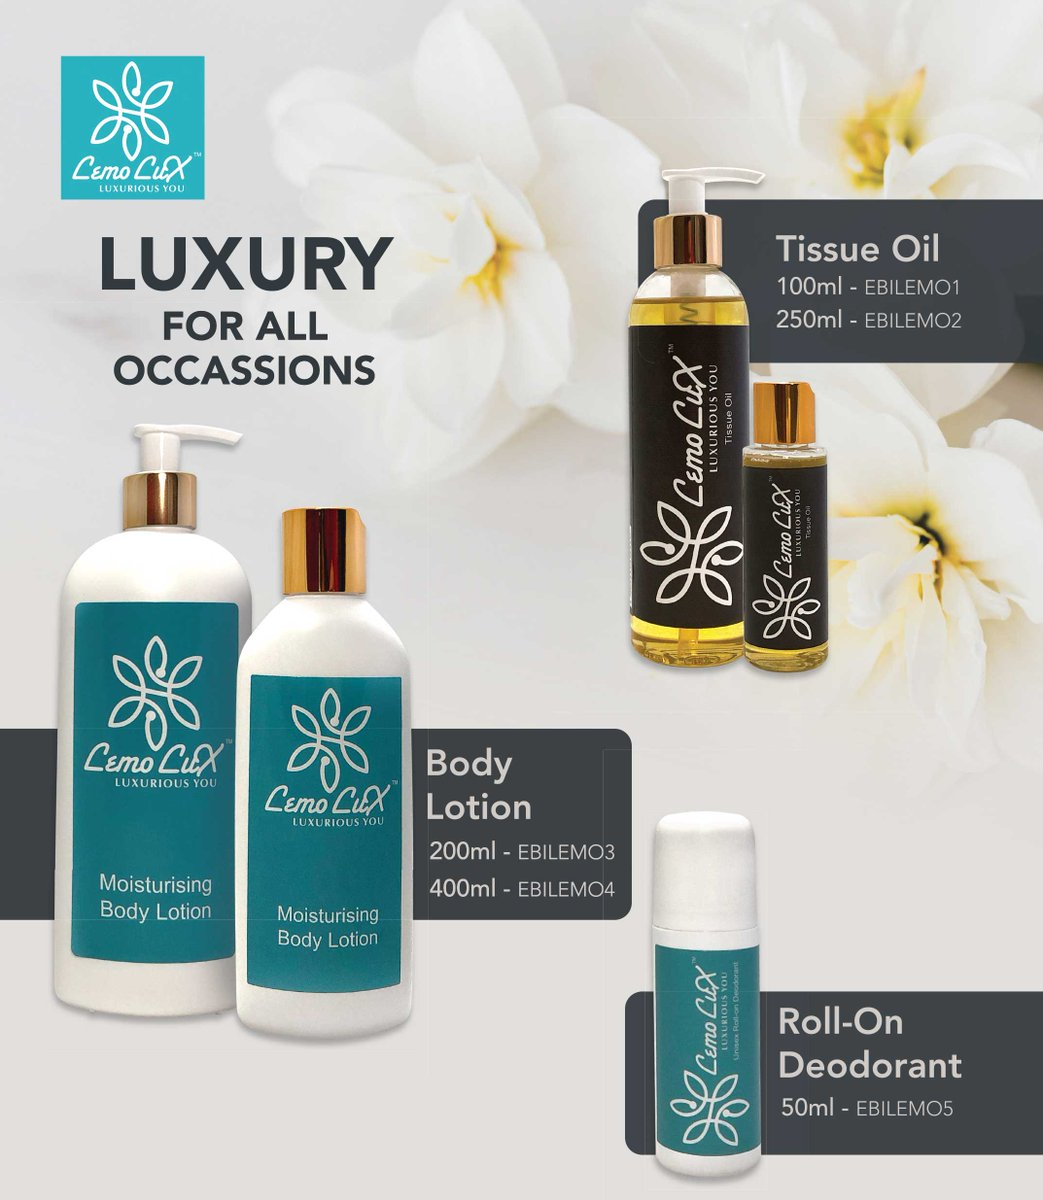 The Skin helps regulate body temperature and permits the sensations of touch, heat and cold. To ensure that you always have smooth skin, we have formulated a range of skin care product just for you.  #Lemolux #lemoluxbodycarerange  #smoothskin https://t.co/tN4Hab30gd